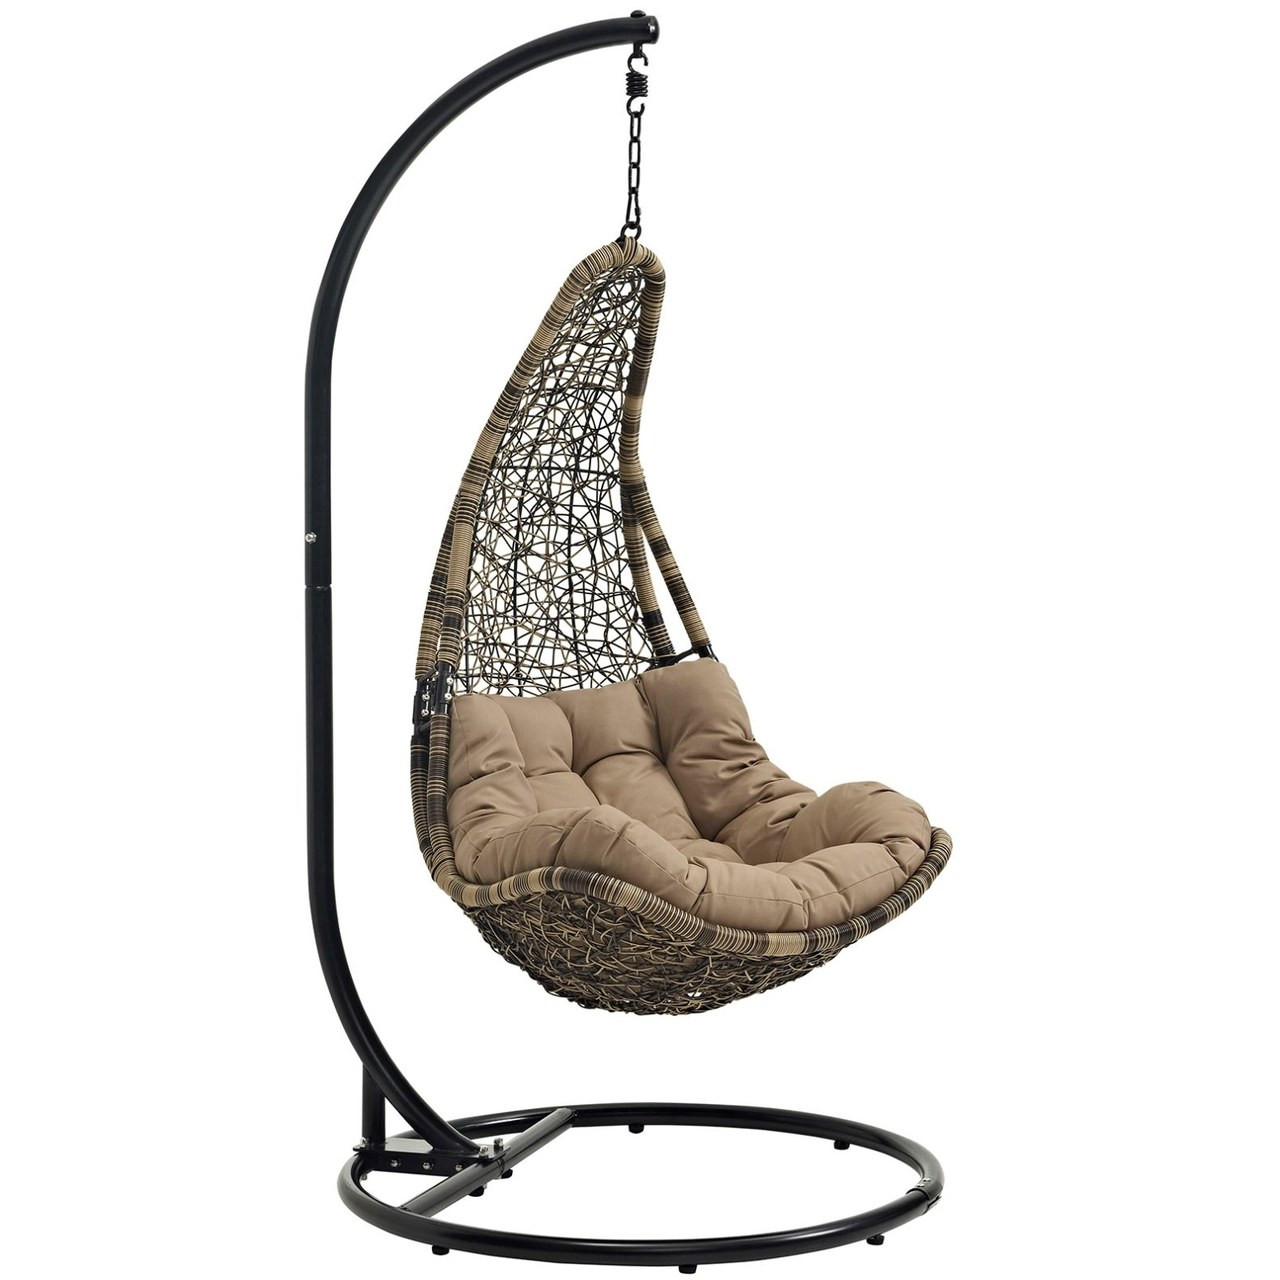 Swing Chair Stand Abate Outdoor Patio Swing Chair With Stand Black Rattan 10909